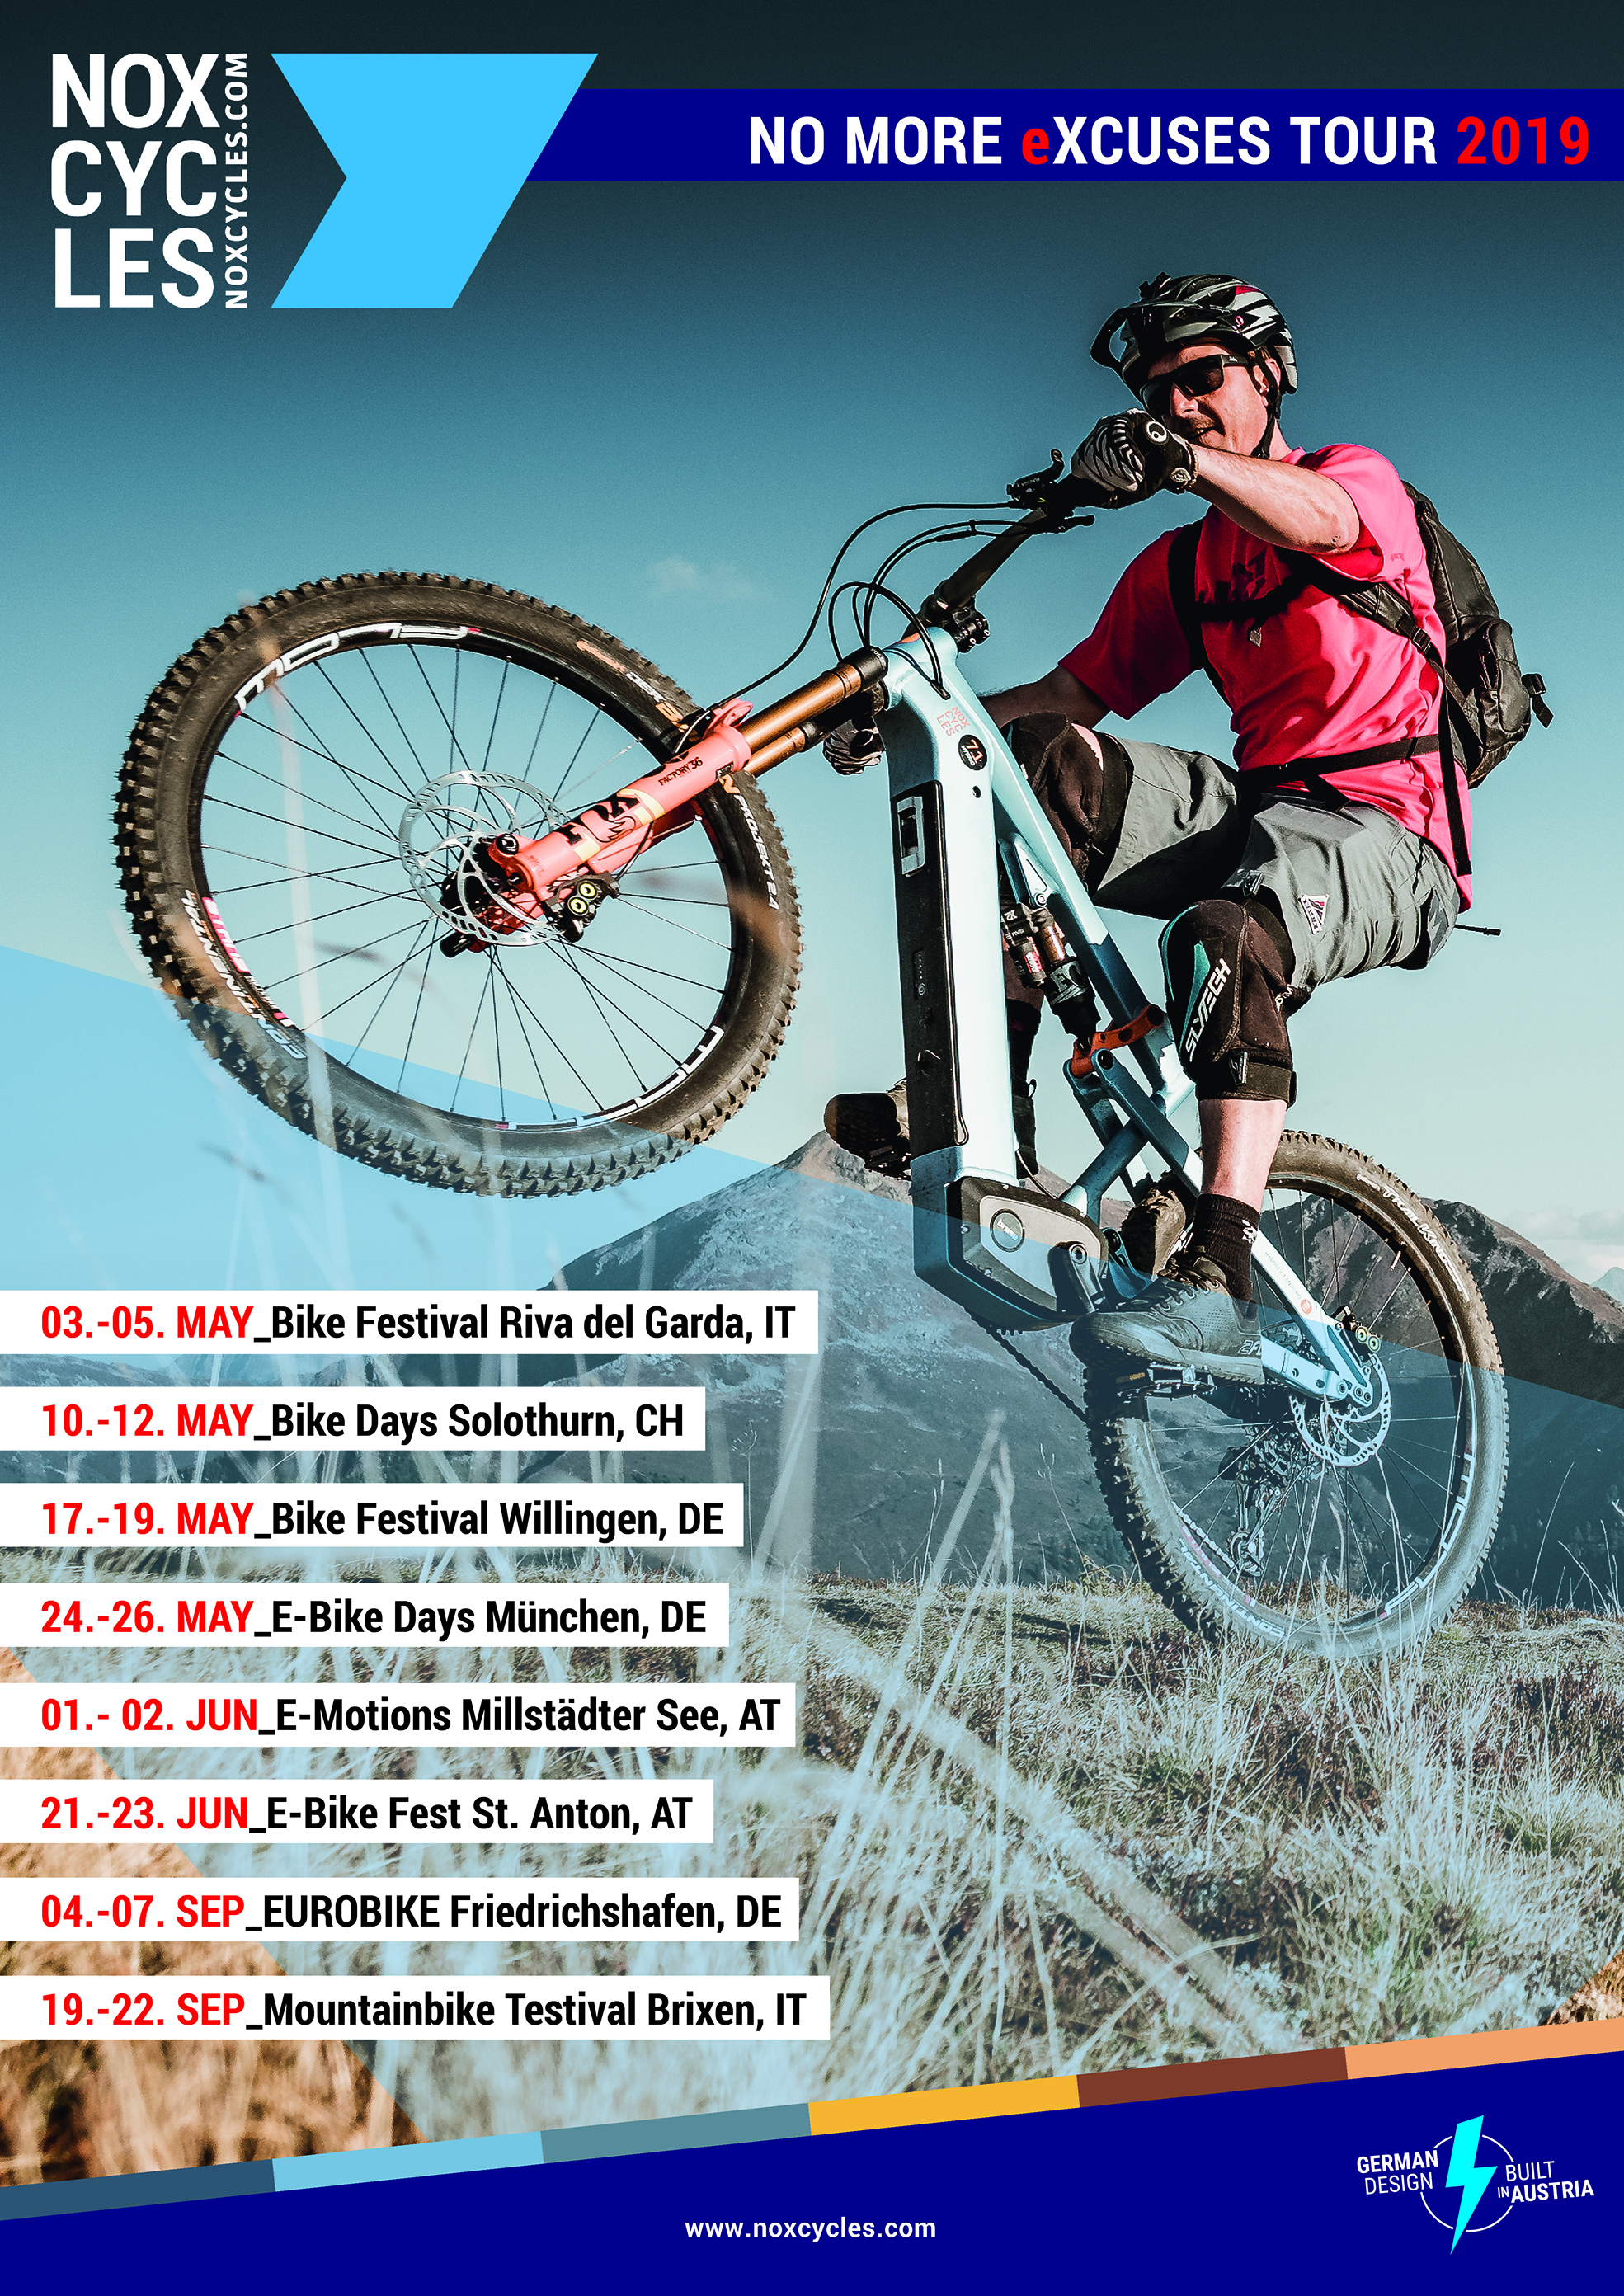 Tour_Flyer_2019_kleind8Ds24SXZSpMb